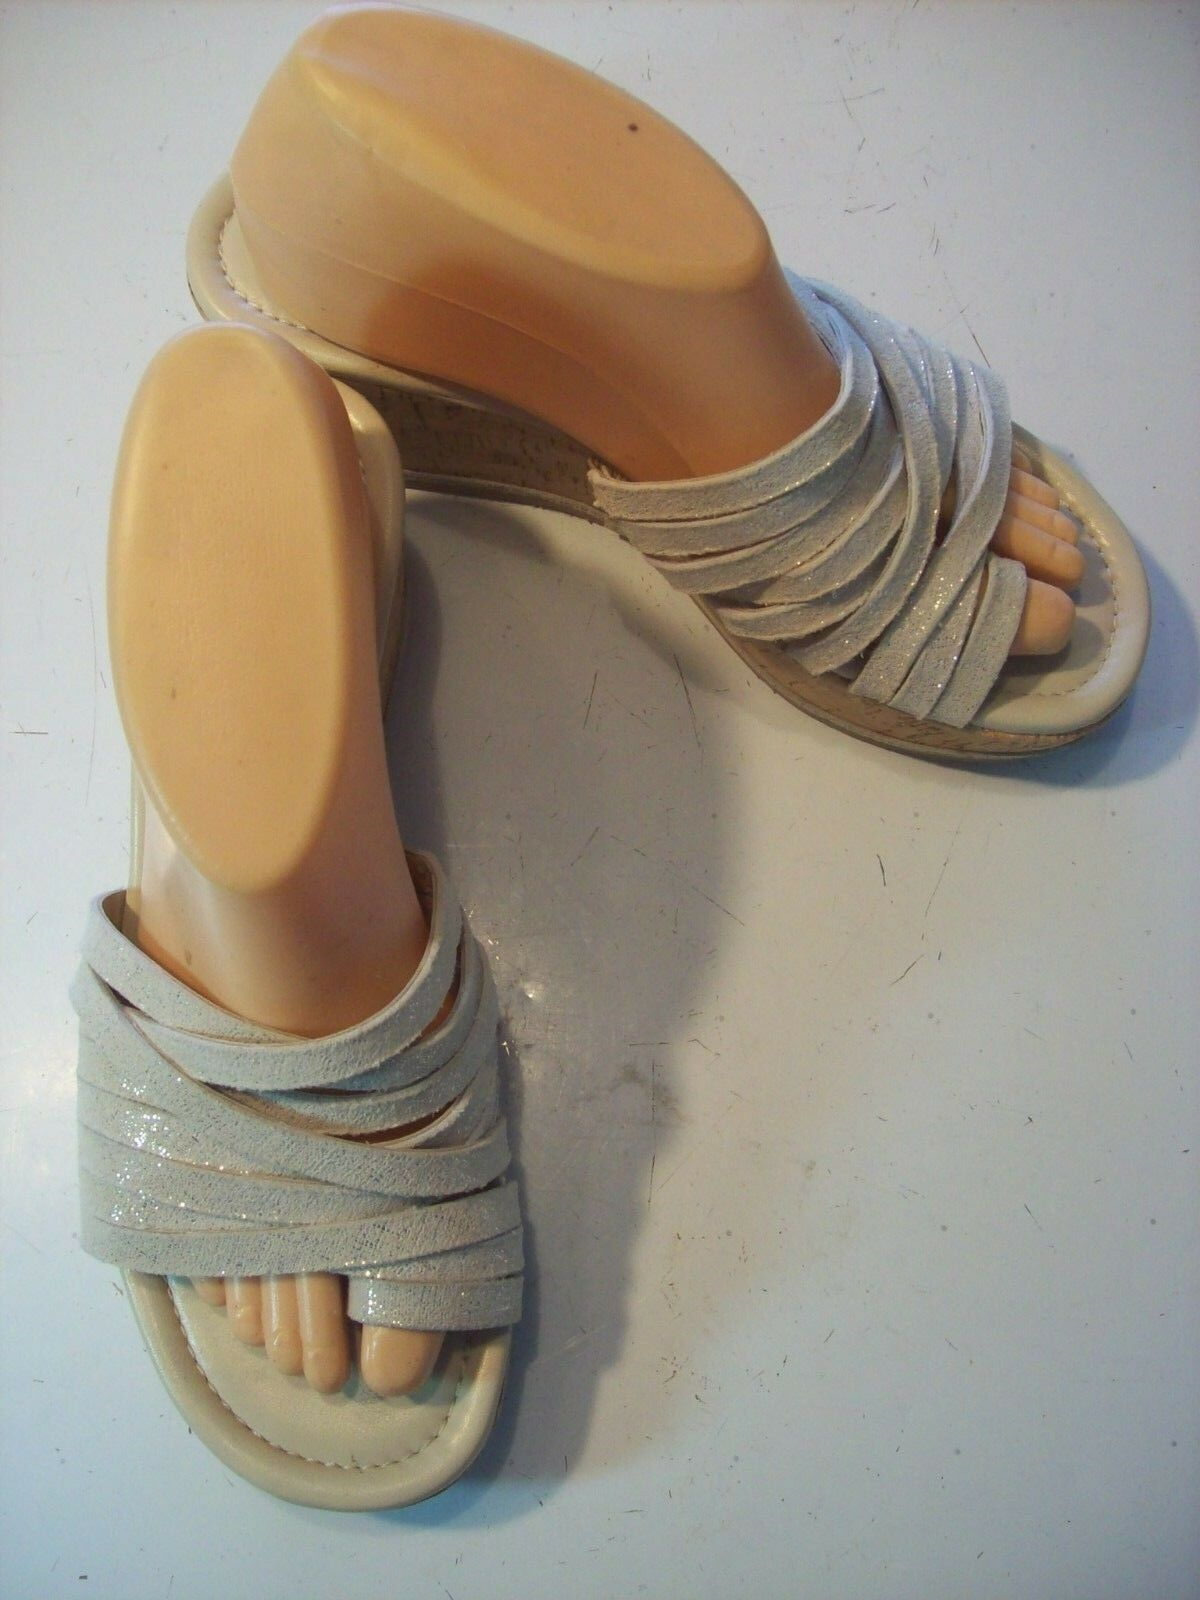 Donald Pliner Sheena 2 Sandals Ivory Silver Strappy Platform Sandals 2 Shoes Size 8 cLOSeT 05c016